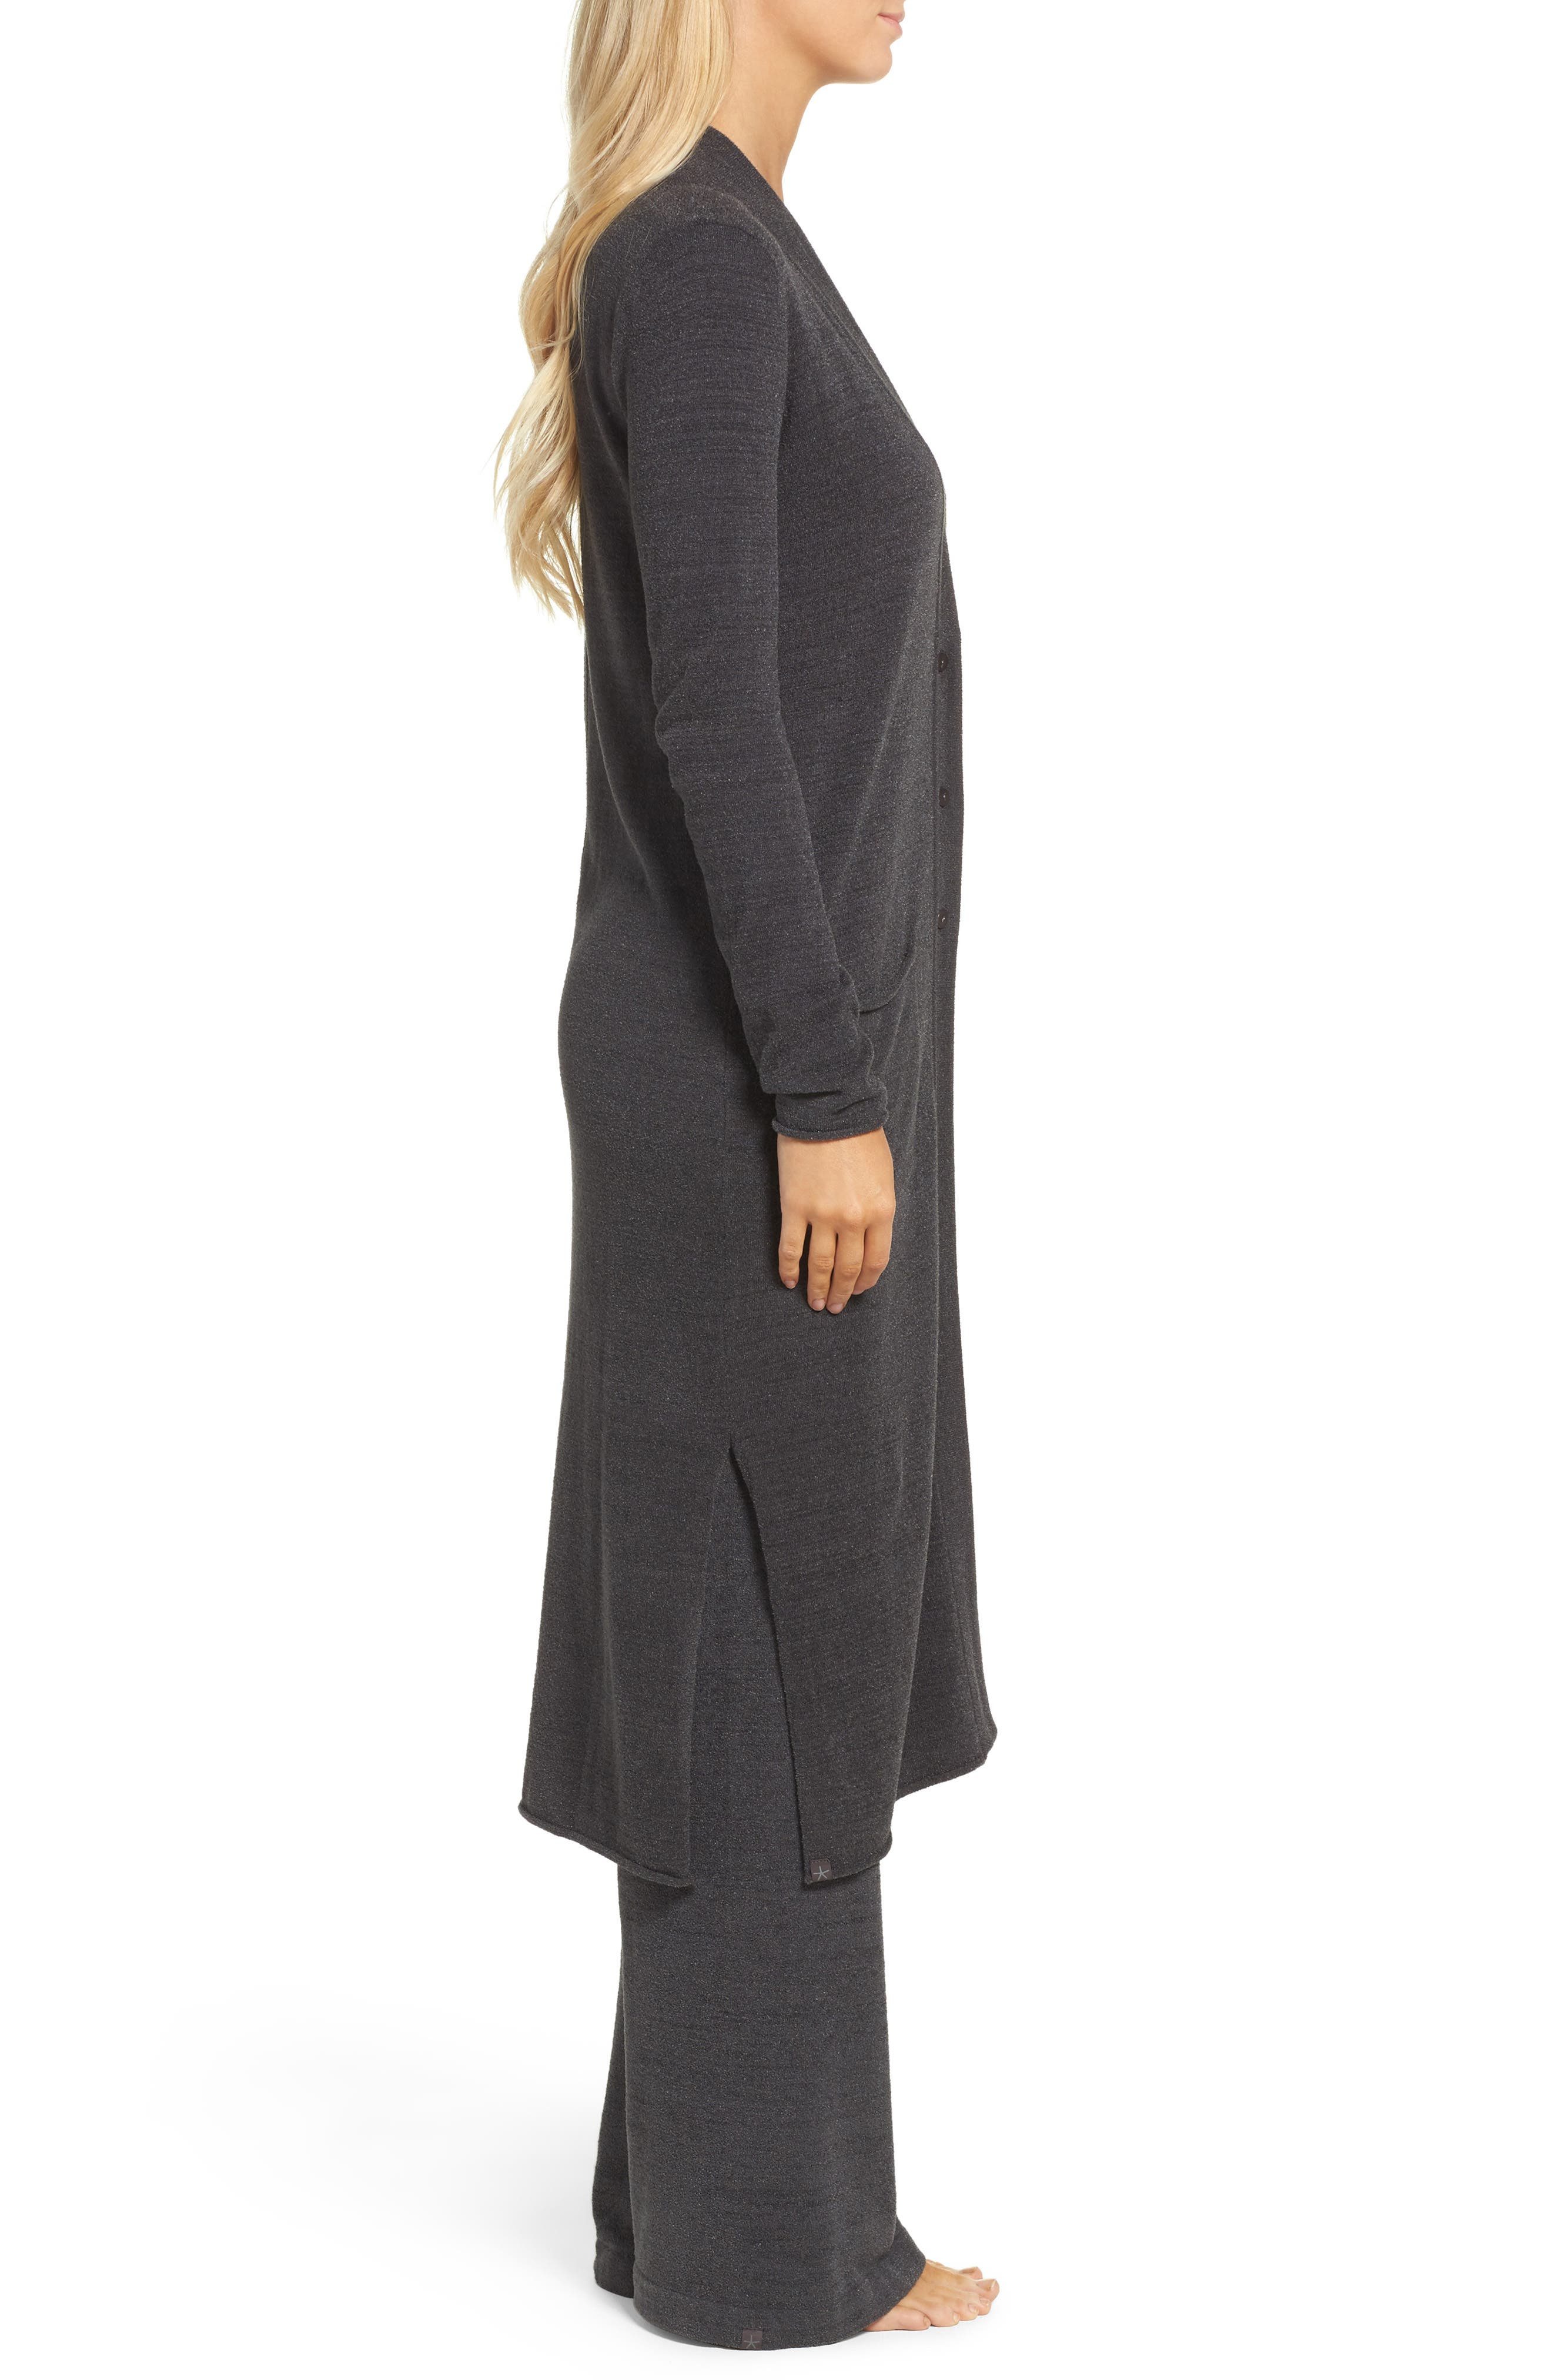 Barefoot Dreams Cozychic Ultra Lite<sup>®</sup> Duster,                             Alternate thumbnail 3, color,                             Carbon